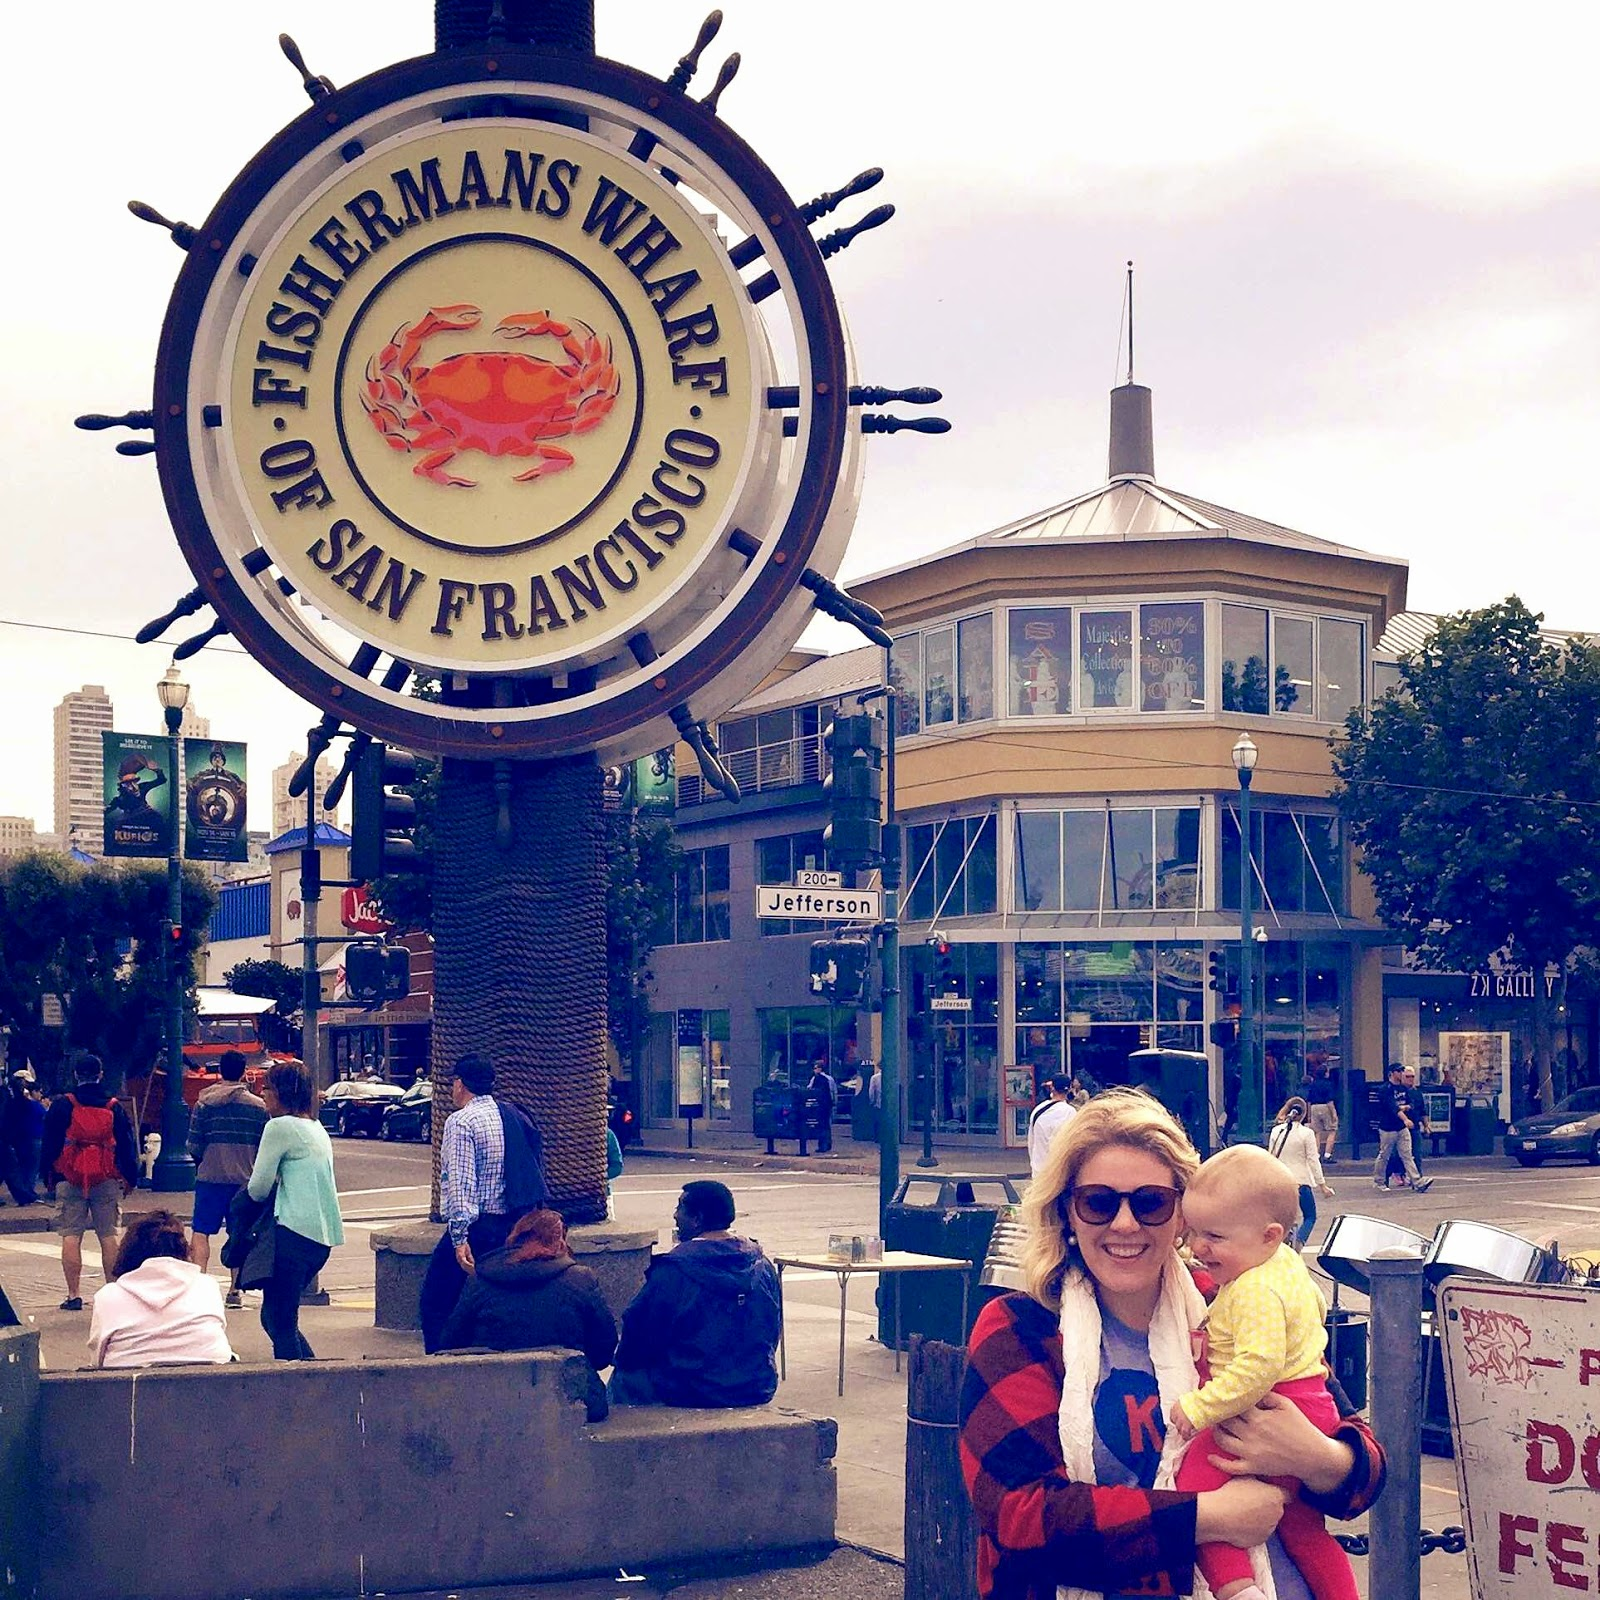 Where to stay in Fisherman's Wharf with kids